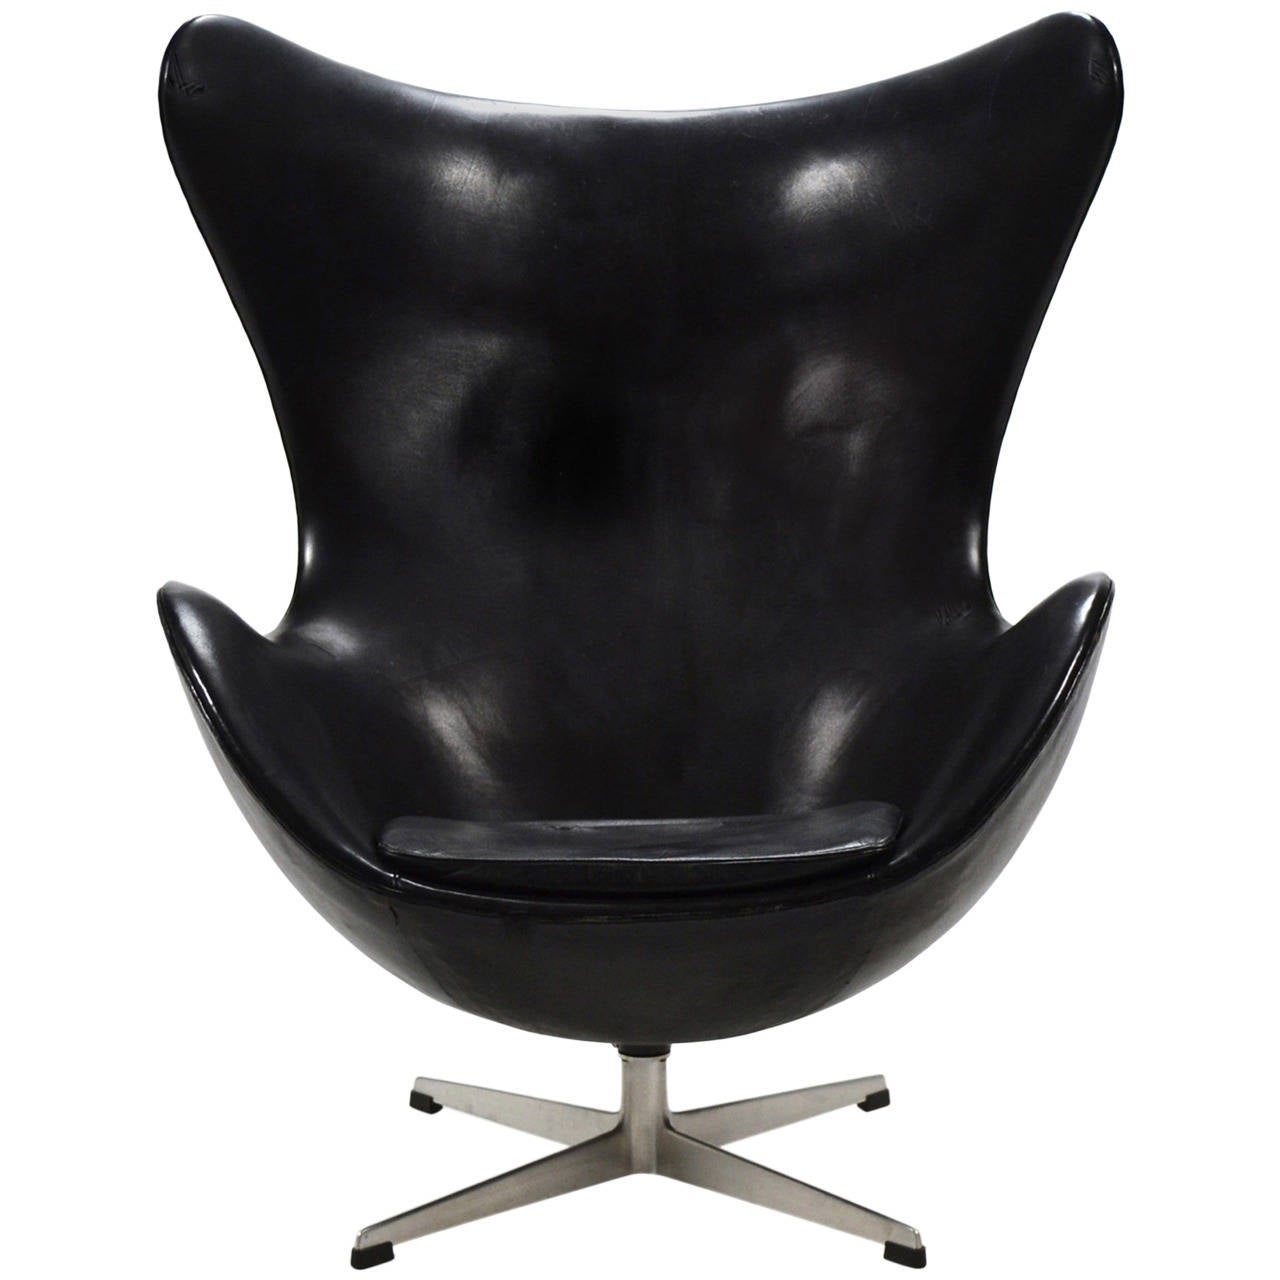 arne jacobsen early egg chair in original black leather. Black Bedroom Furniture Sets. Home Design Ideas